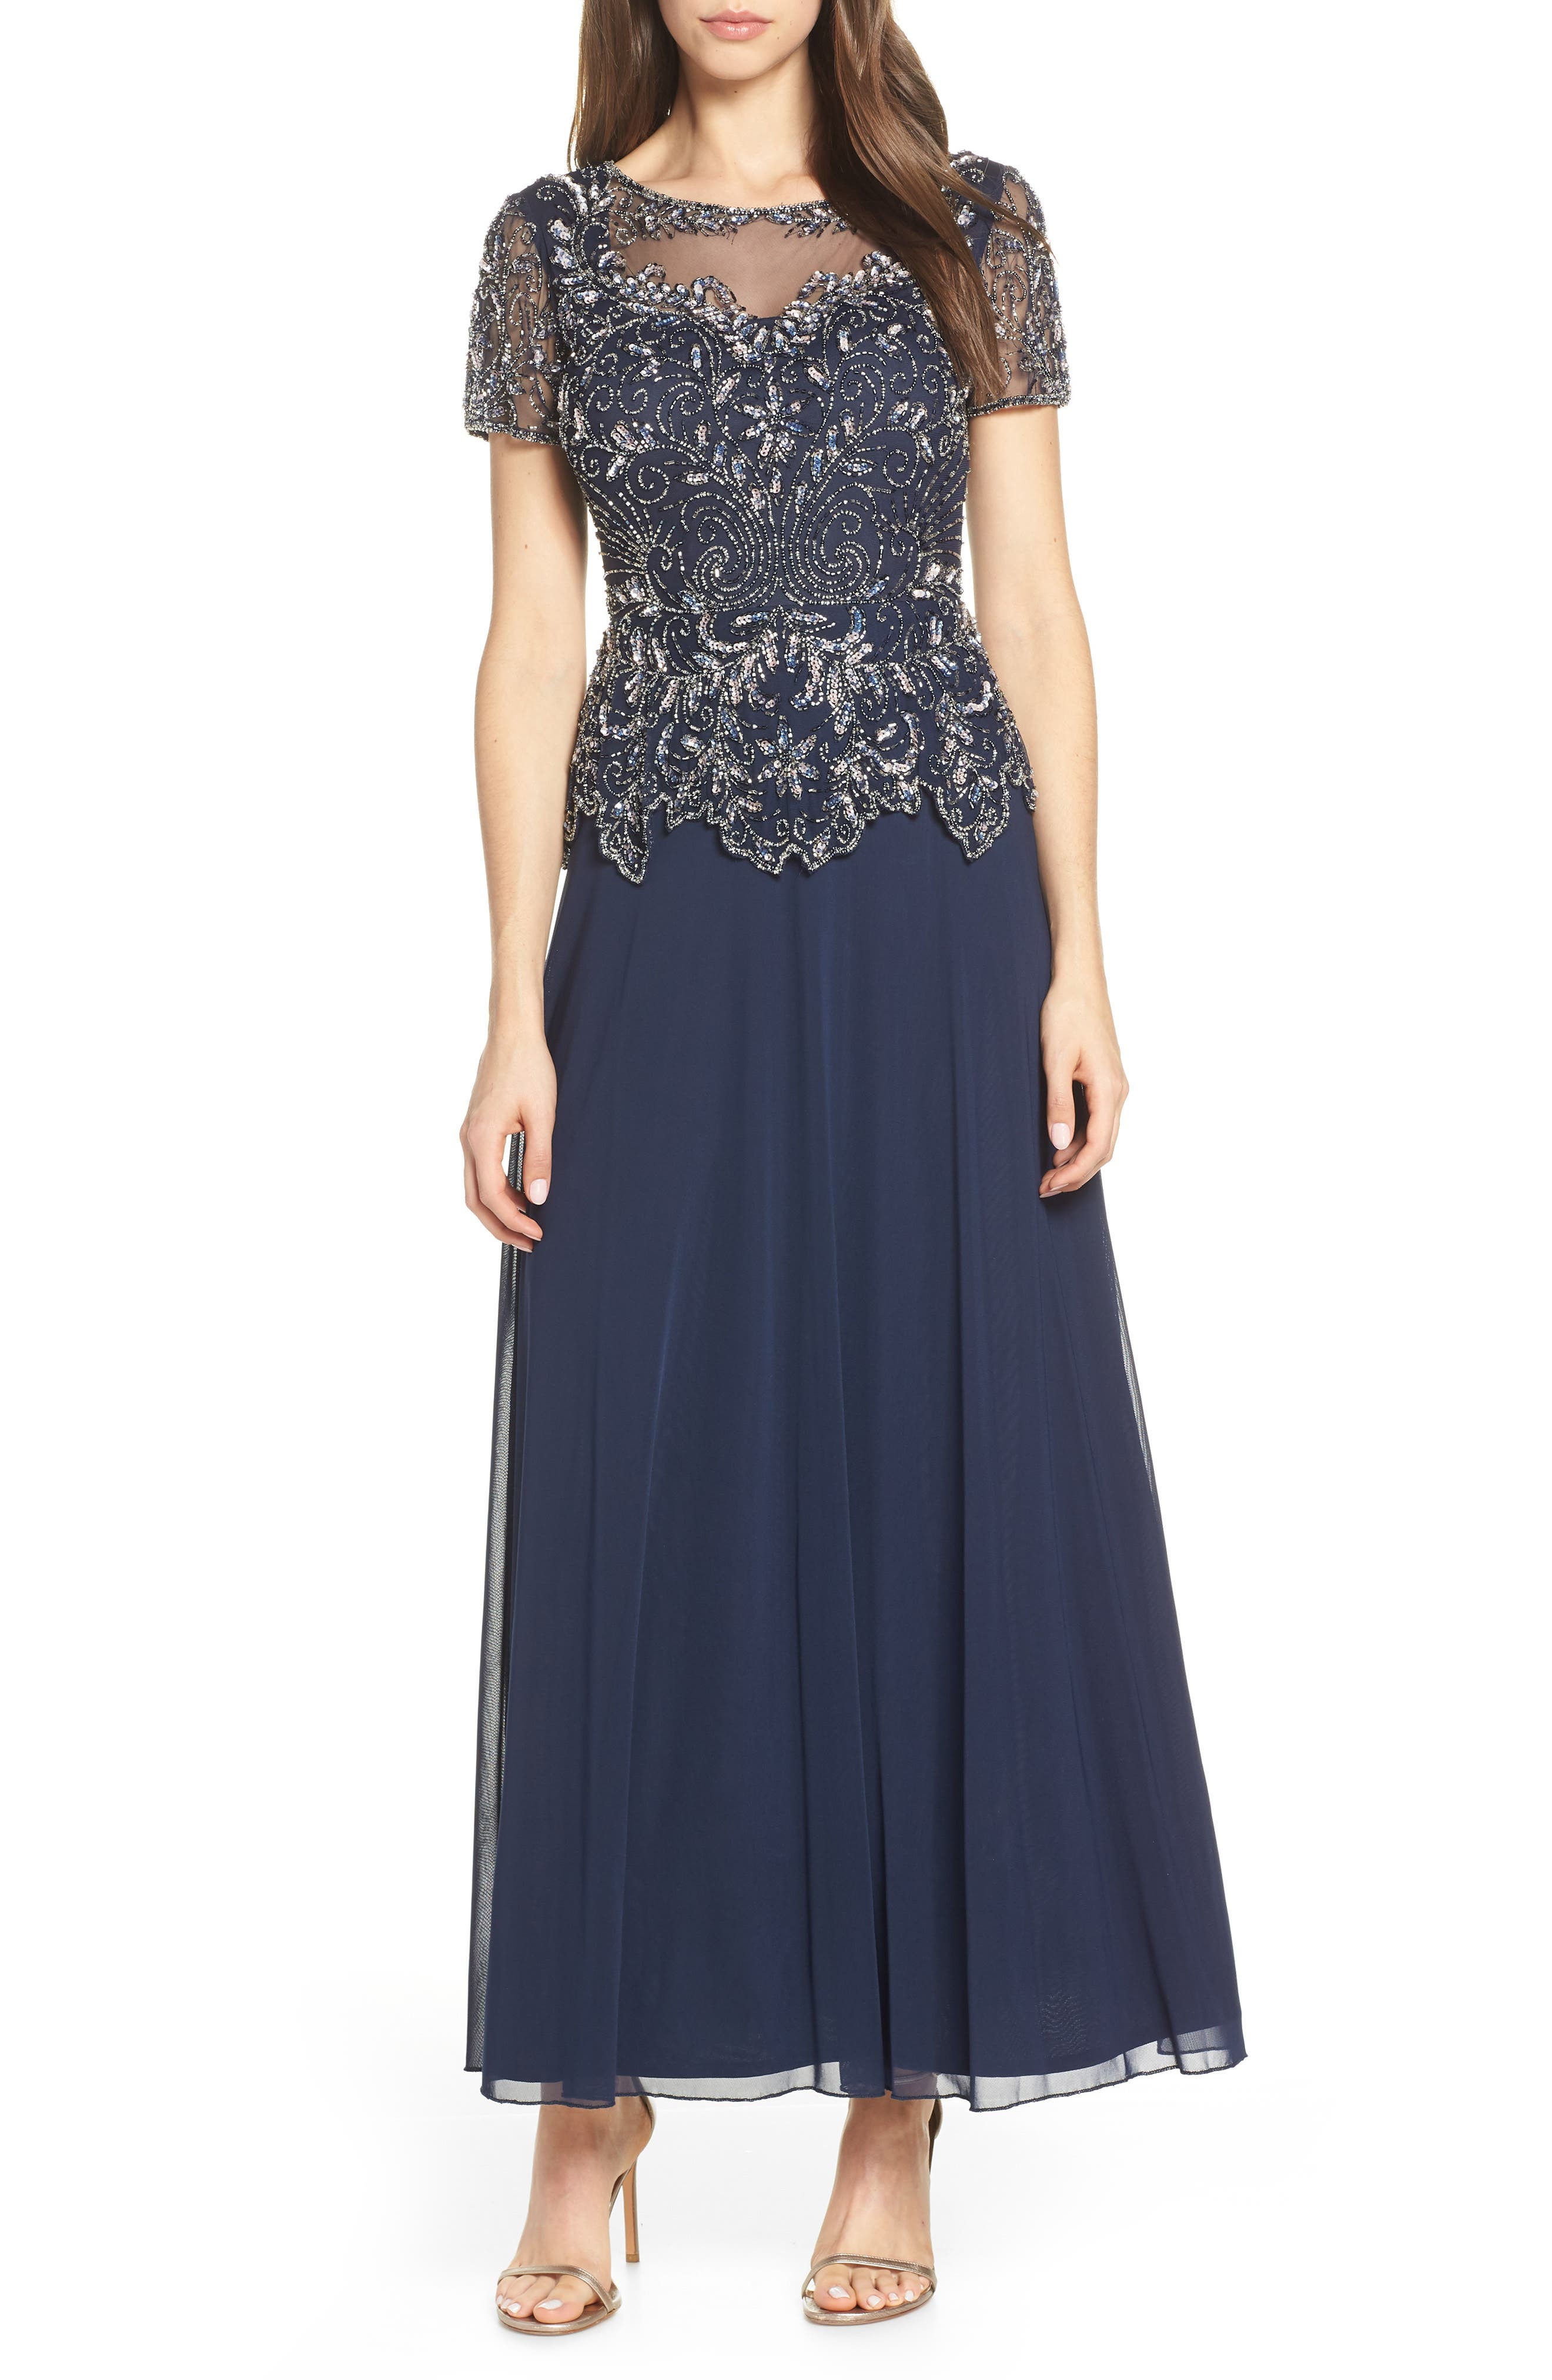 Pisarro Nights Embellished Mesh Bodice Evening Dress, Blue